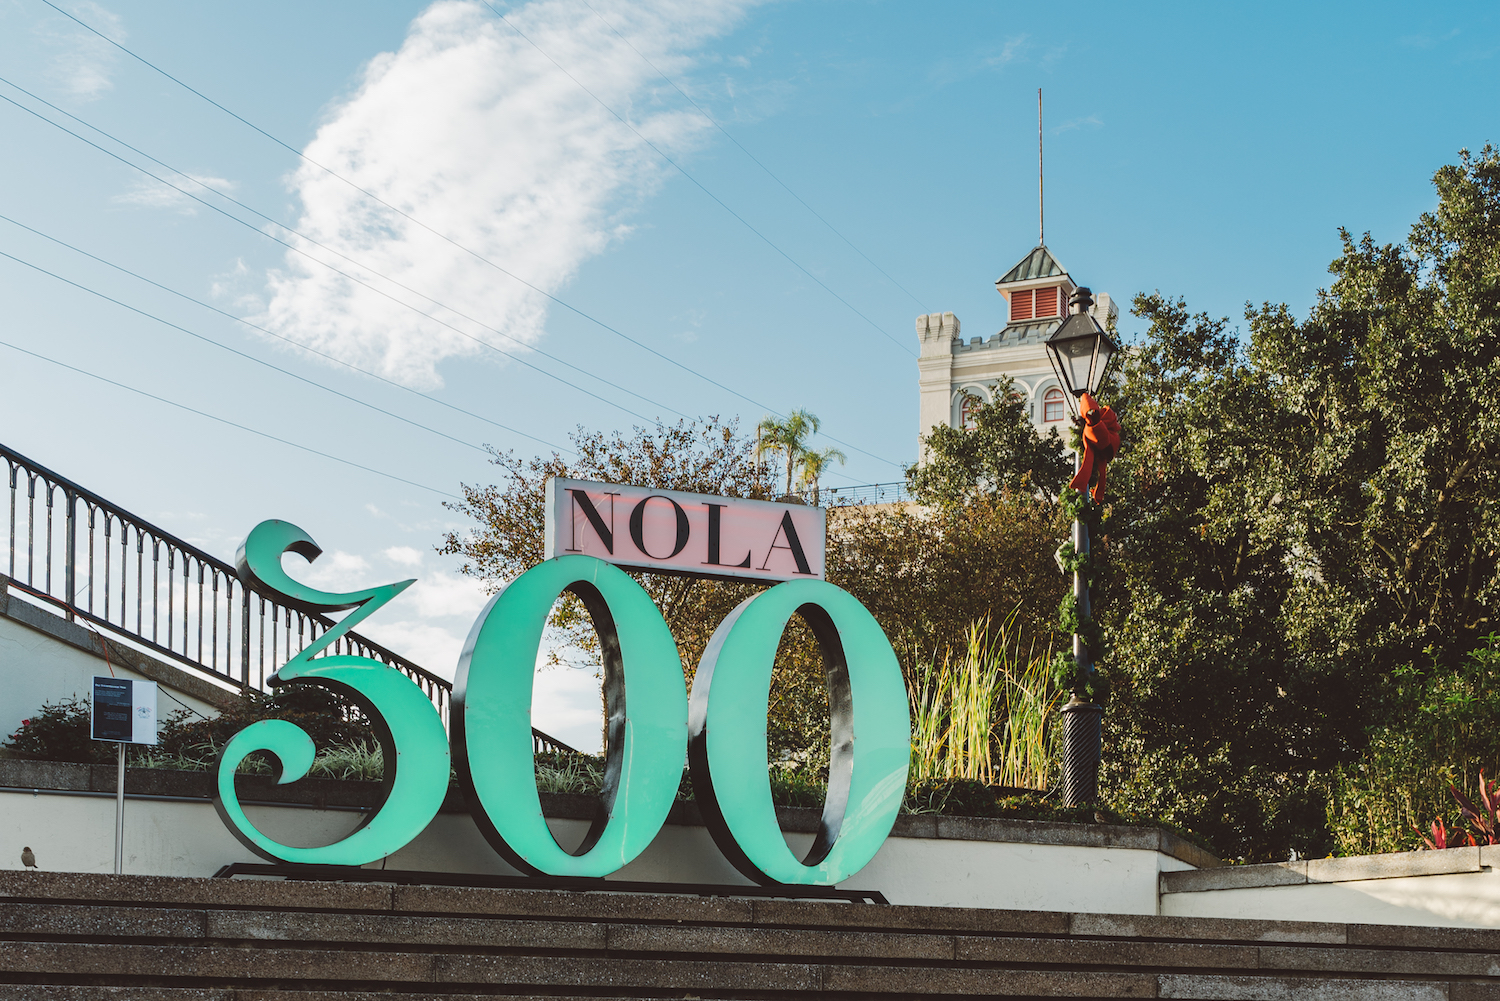 gonola find where to find the nola 300 statues